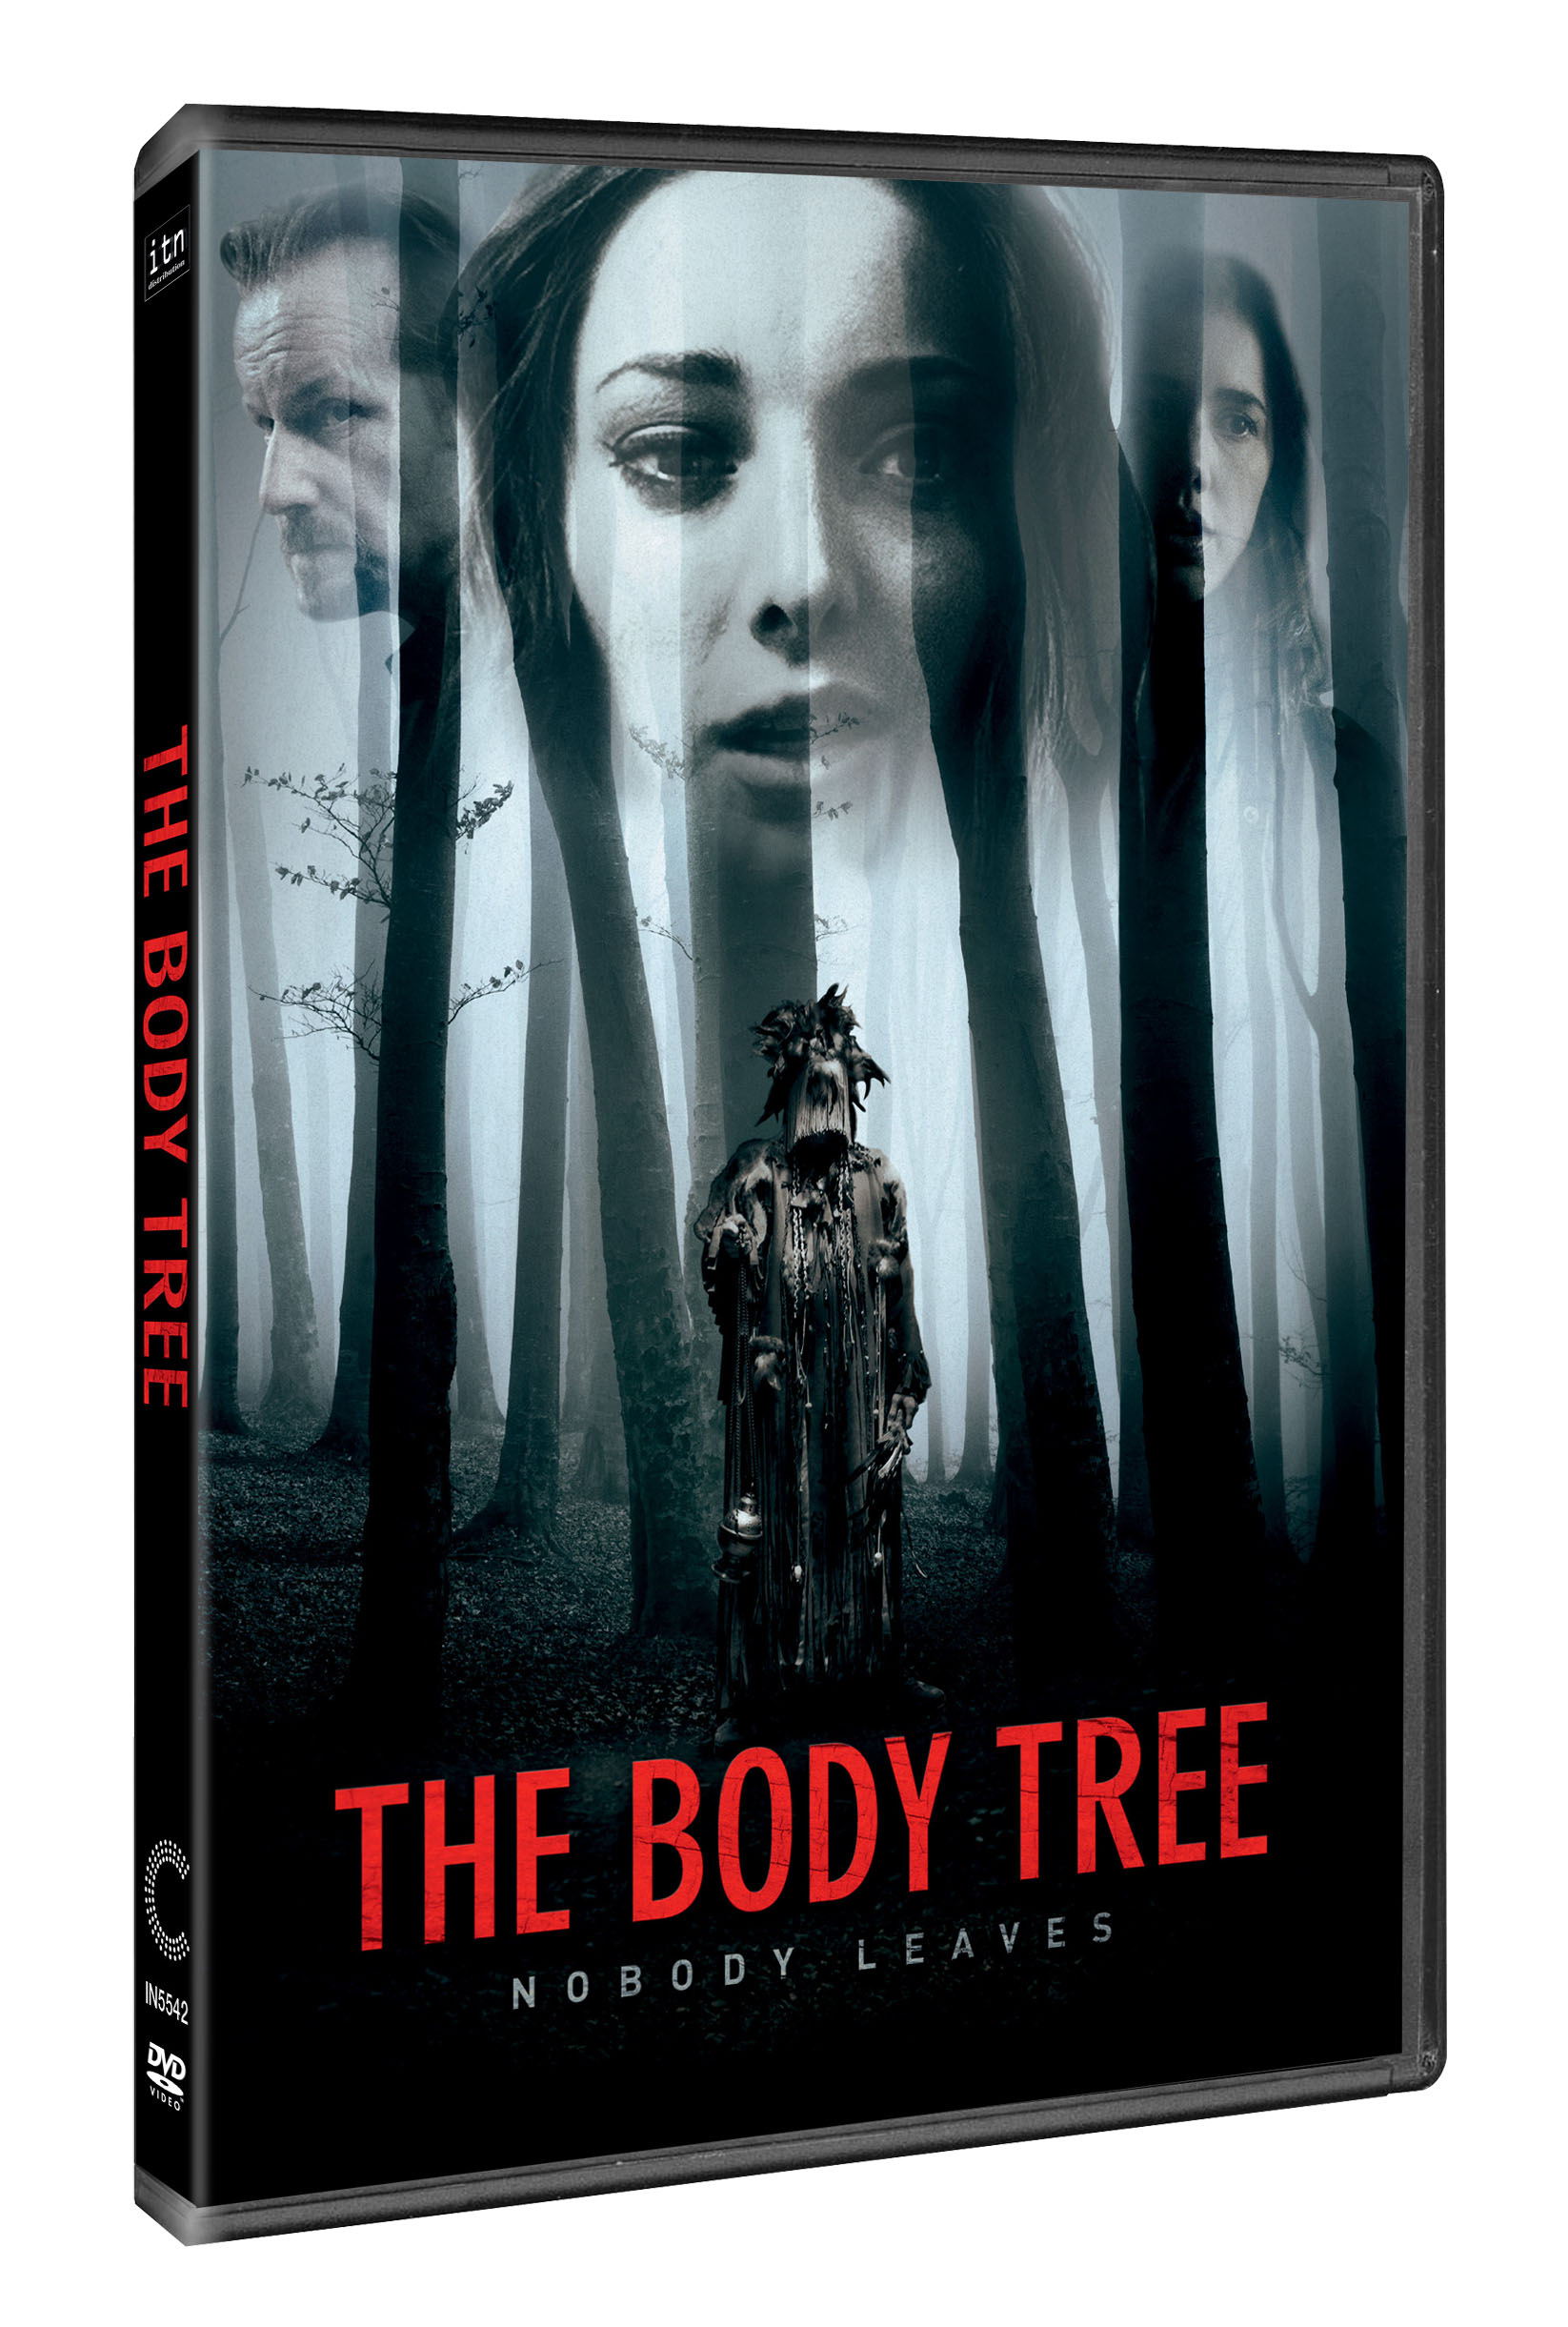 The Body Tree Itn Distribution Cinedigm Entertainment